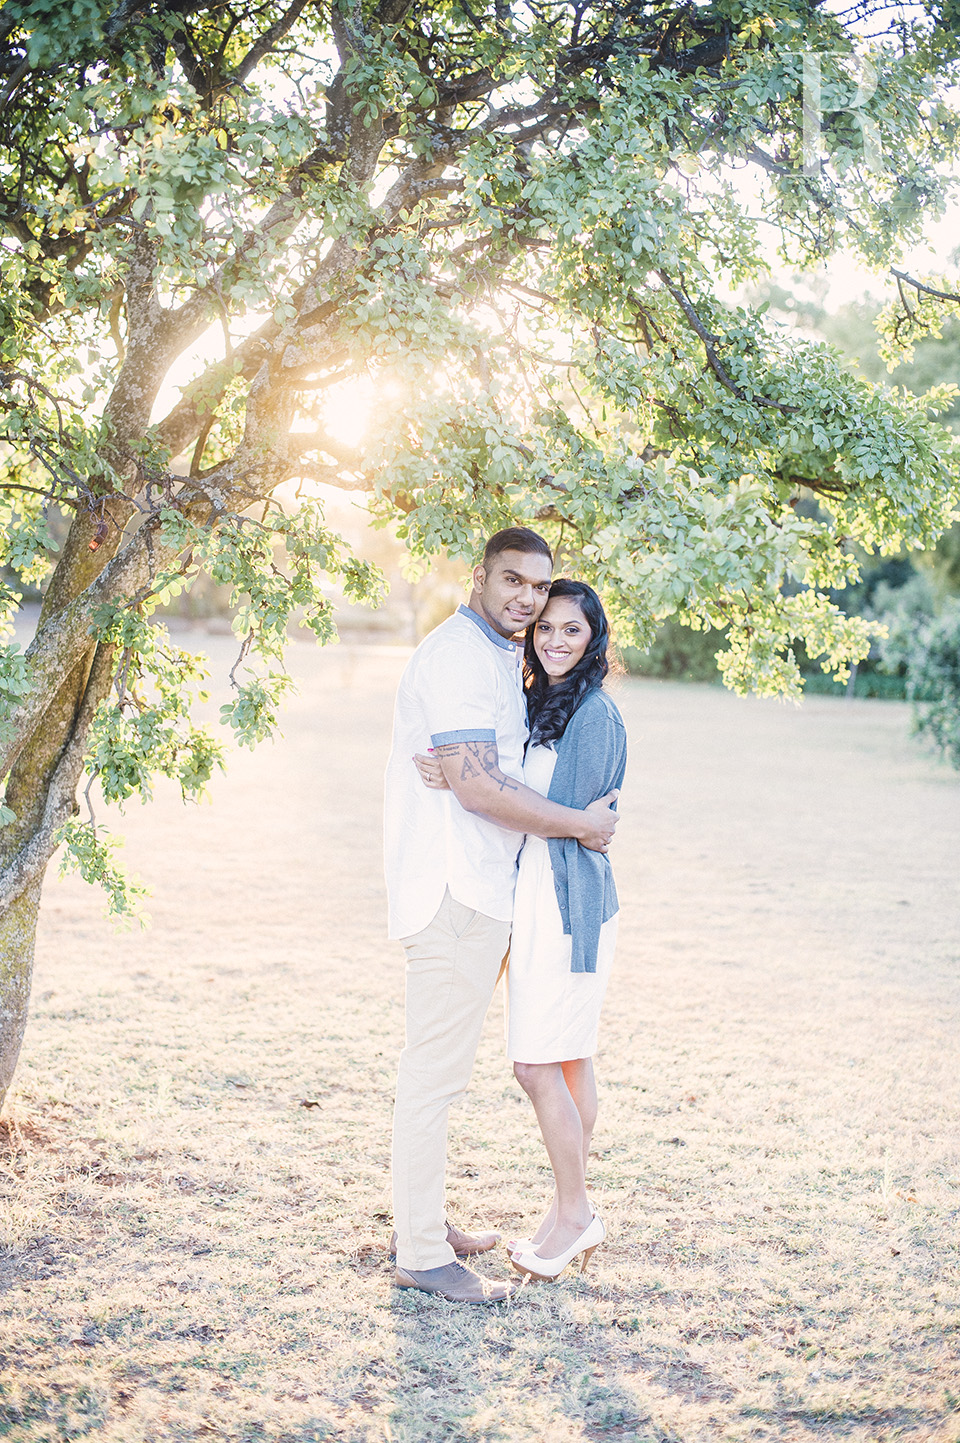 RYAN PARKER PHOTOGRAPHY_ENGAGEMENT_DURBAN_L&R DSC_6018.jpg